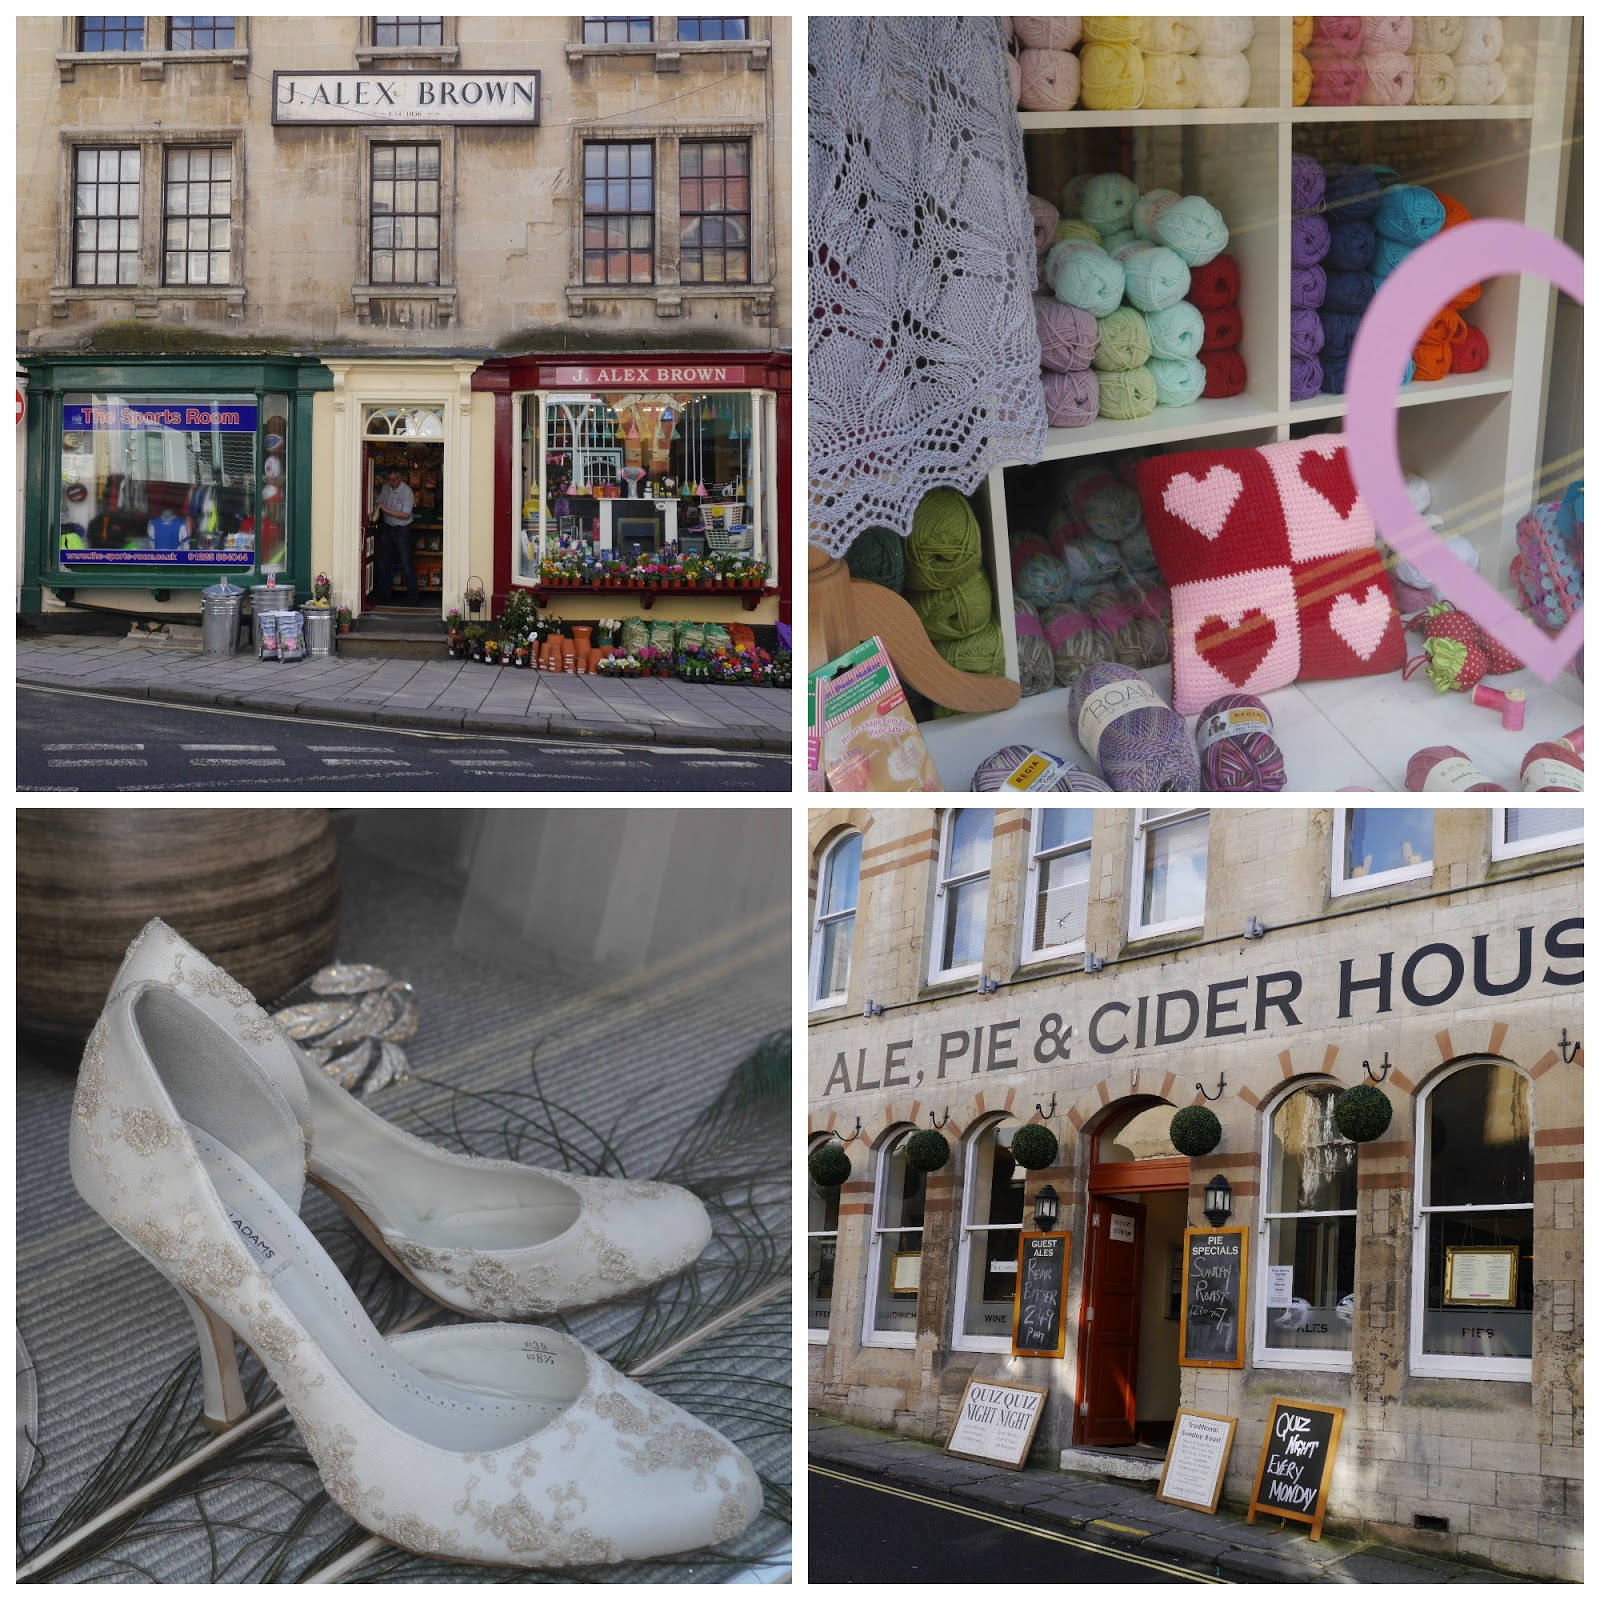 Independent shops, Bradford on Avon